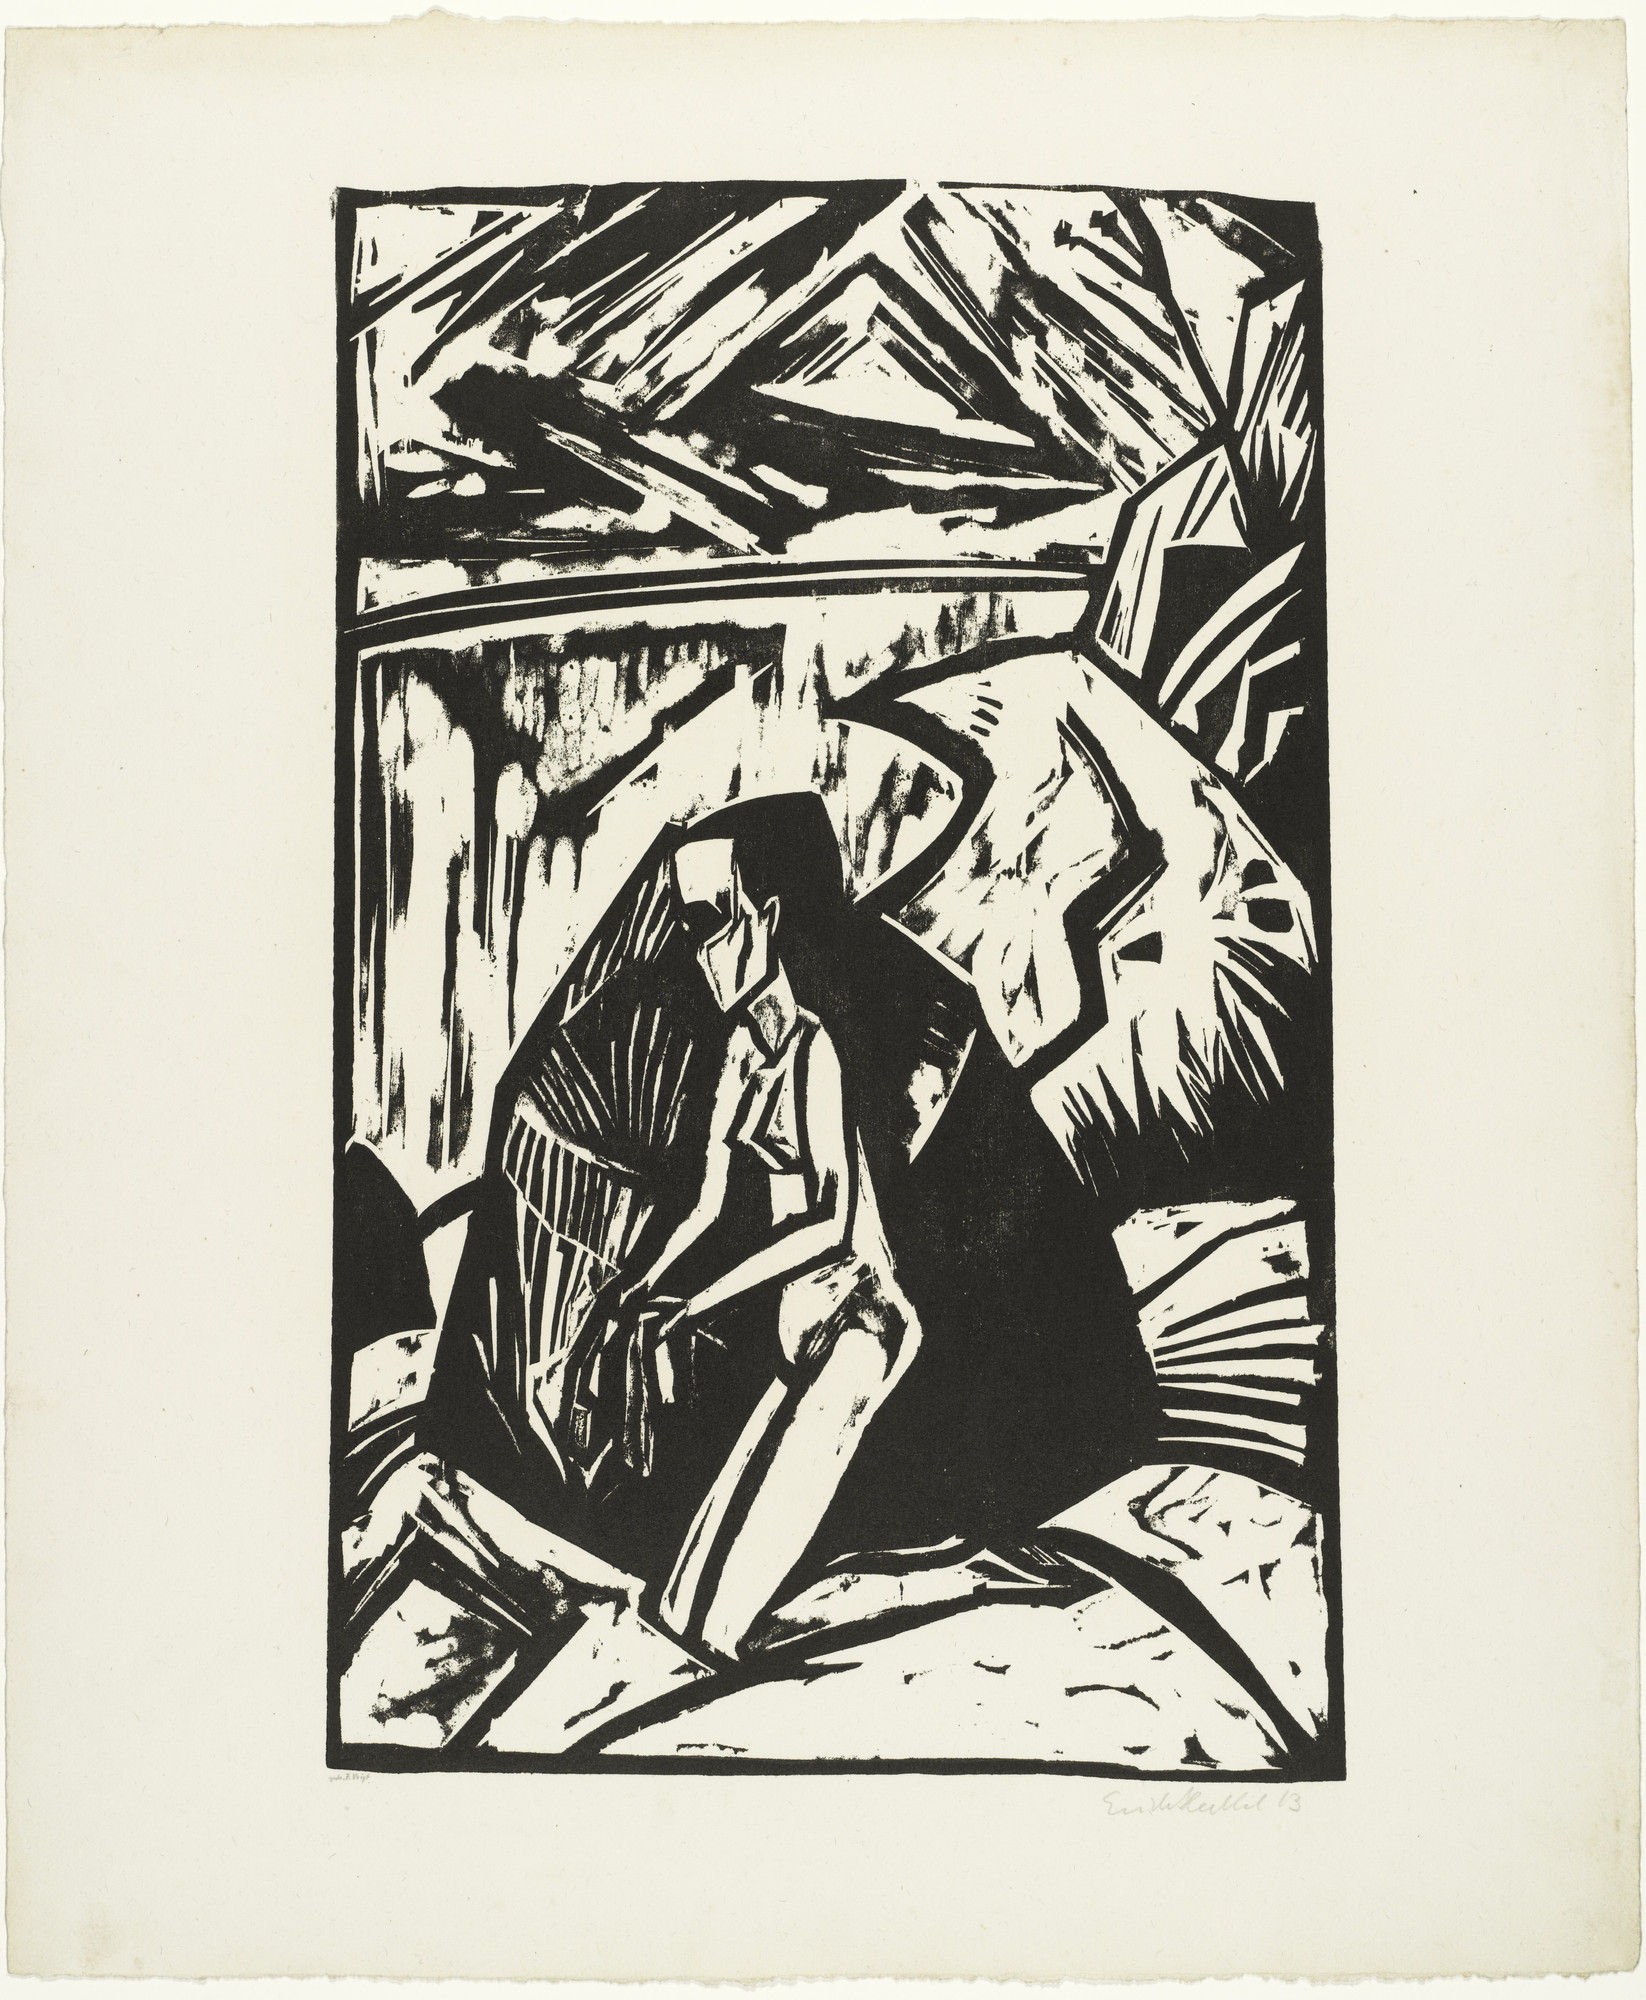 Erich Heckel. Woman Kneeling Near a Rock (Kniende am Stein) from the portfolio Eleven Woodcuts, 1912-1919 (Elf Holzschnitte, 1912-1919). 1913 (published 1921)